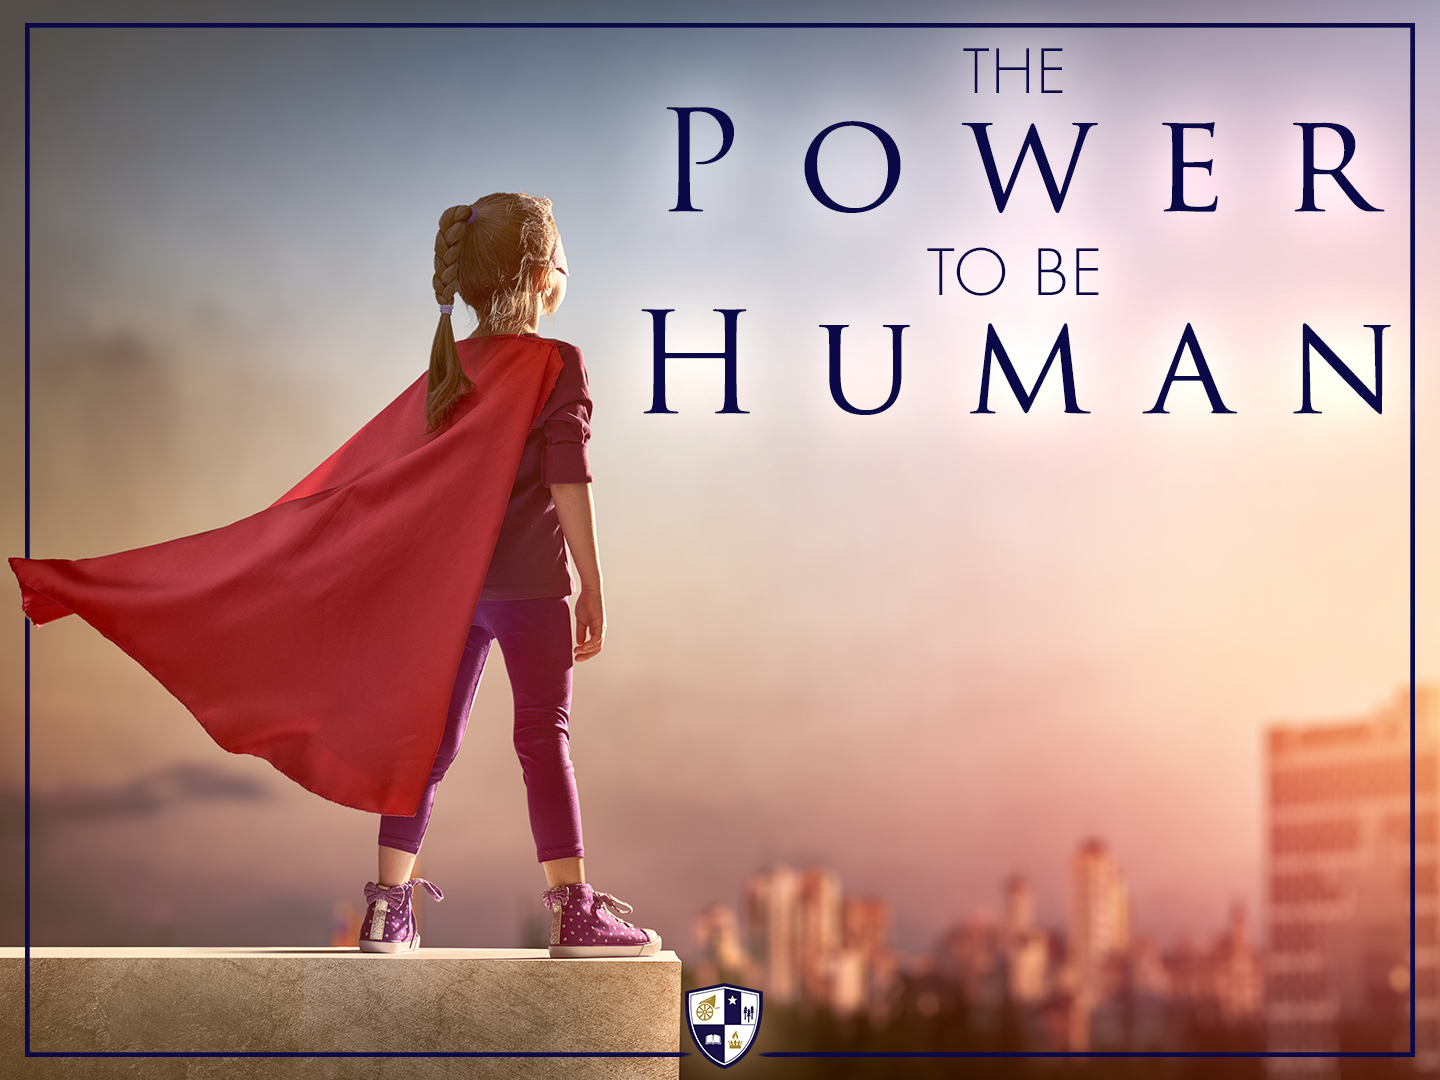 The Power to Be Human